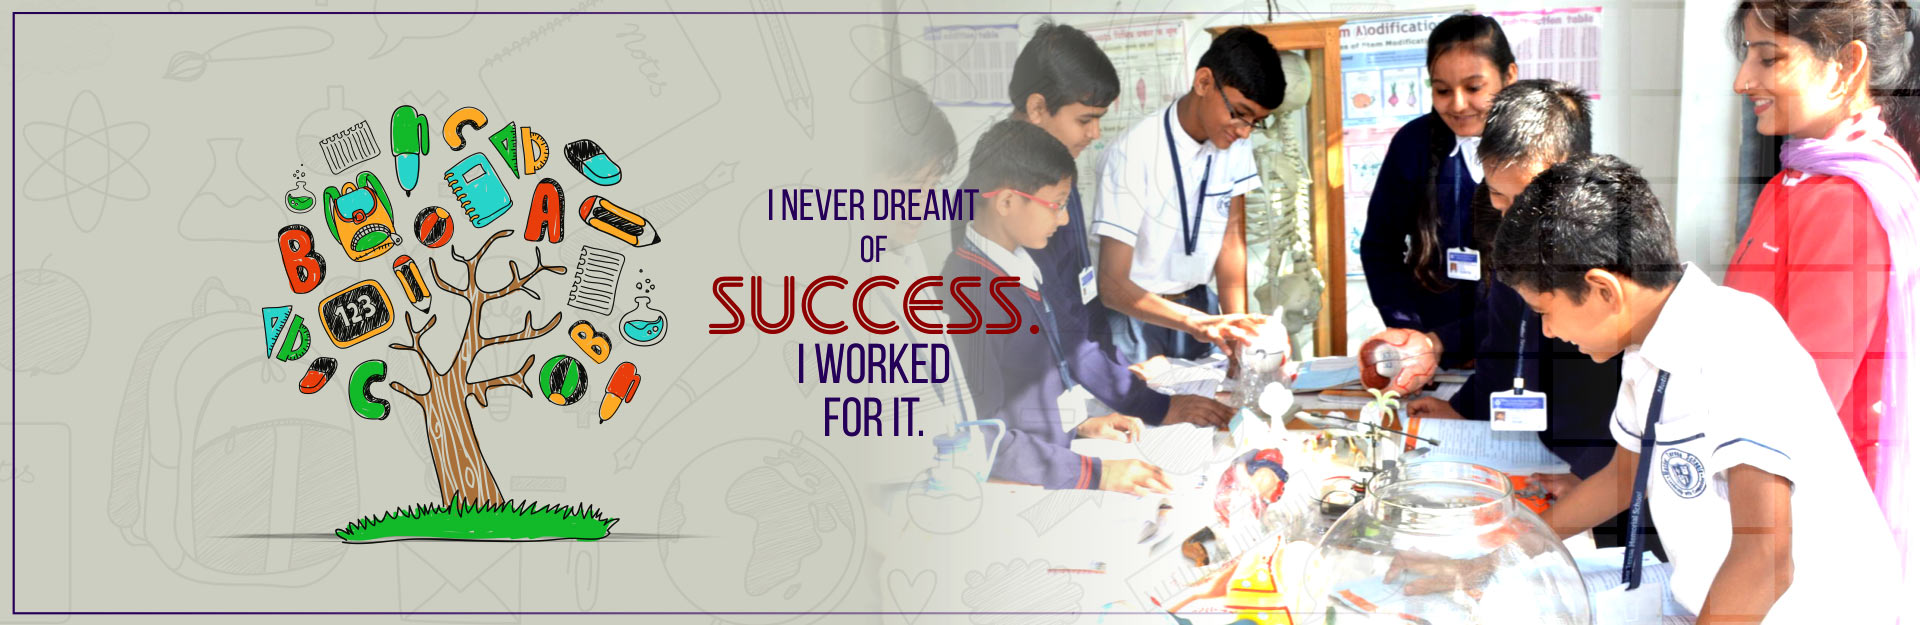 mother_teresa_school_success-1